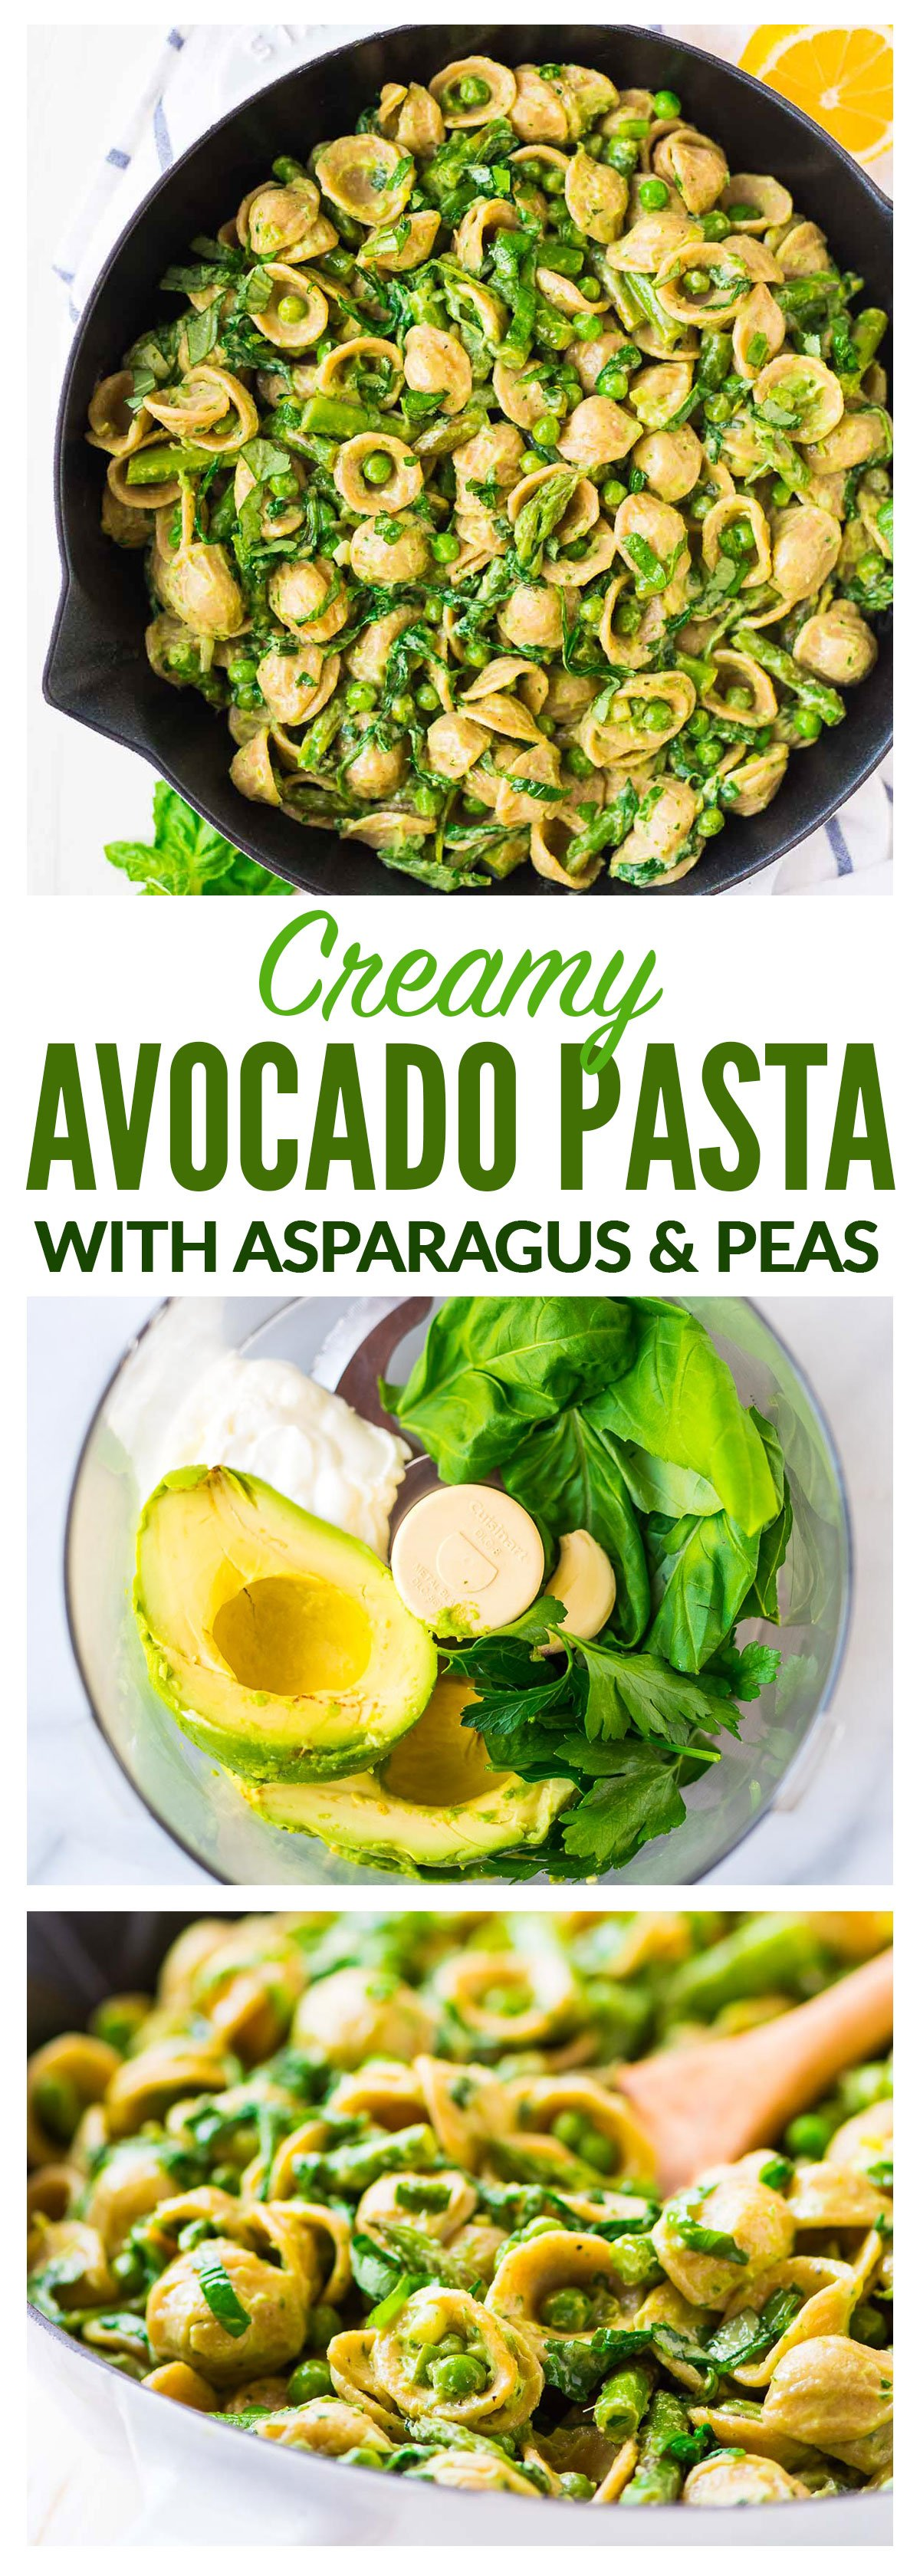 Avocado Pasta — Greek yogurt and avocado makes the CREAMIEST pasta sauce, no butter and no heavy cream required! Add asparagus, peas, spinach or any other vegetable or even chicken. Easy and healthy. #avocado #recipe #pasta #weeknightdinner #vegetarian #recipe #healthy #easy #asparagus